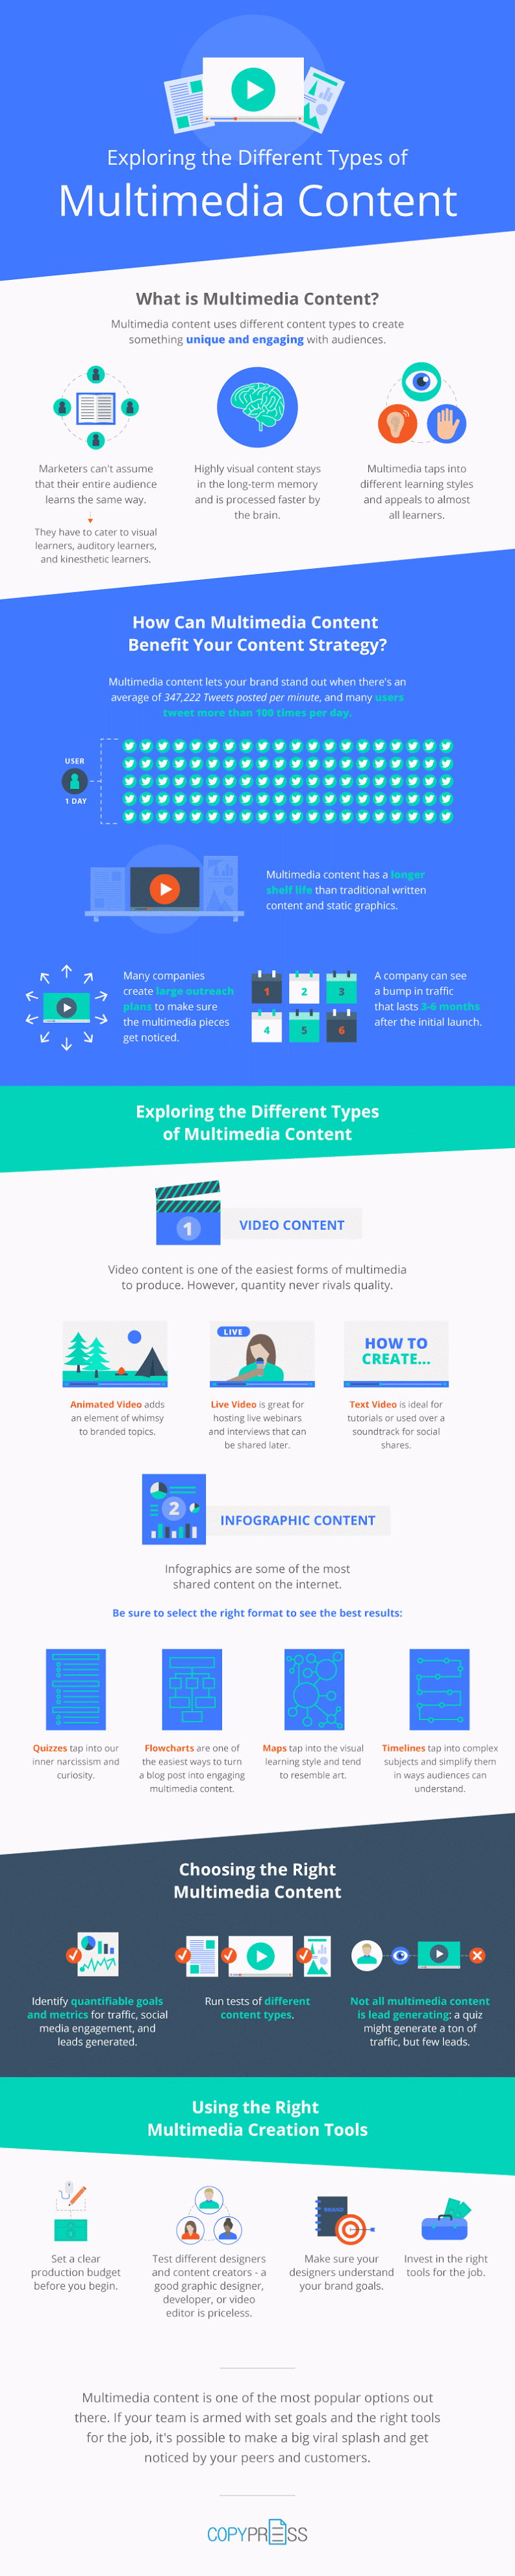 Exploring the Different Types of Multimedia Content